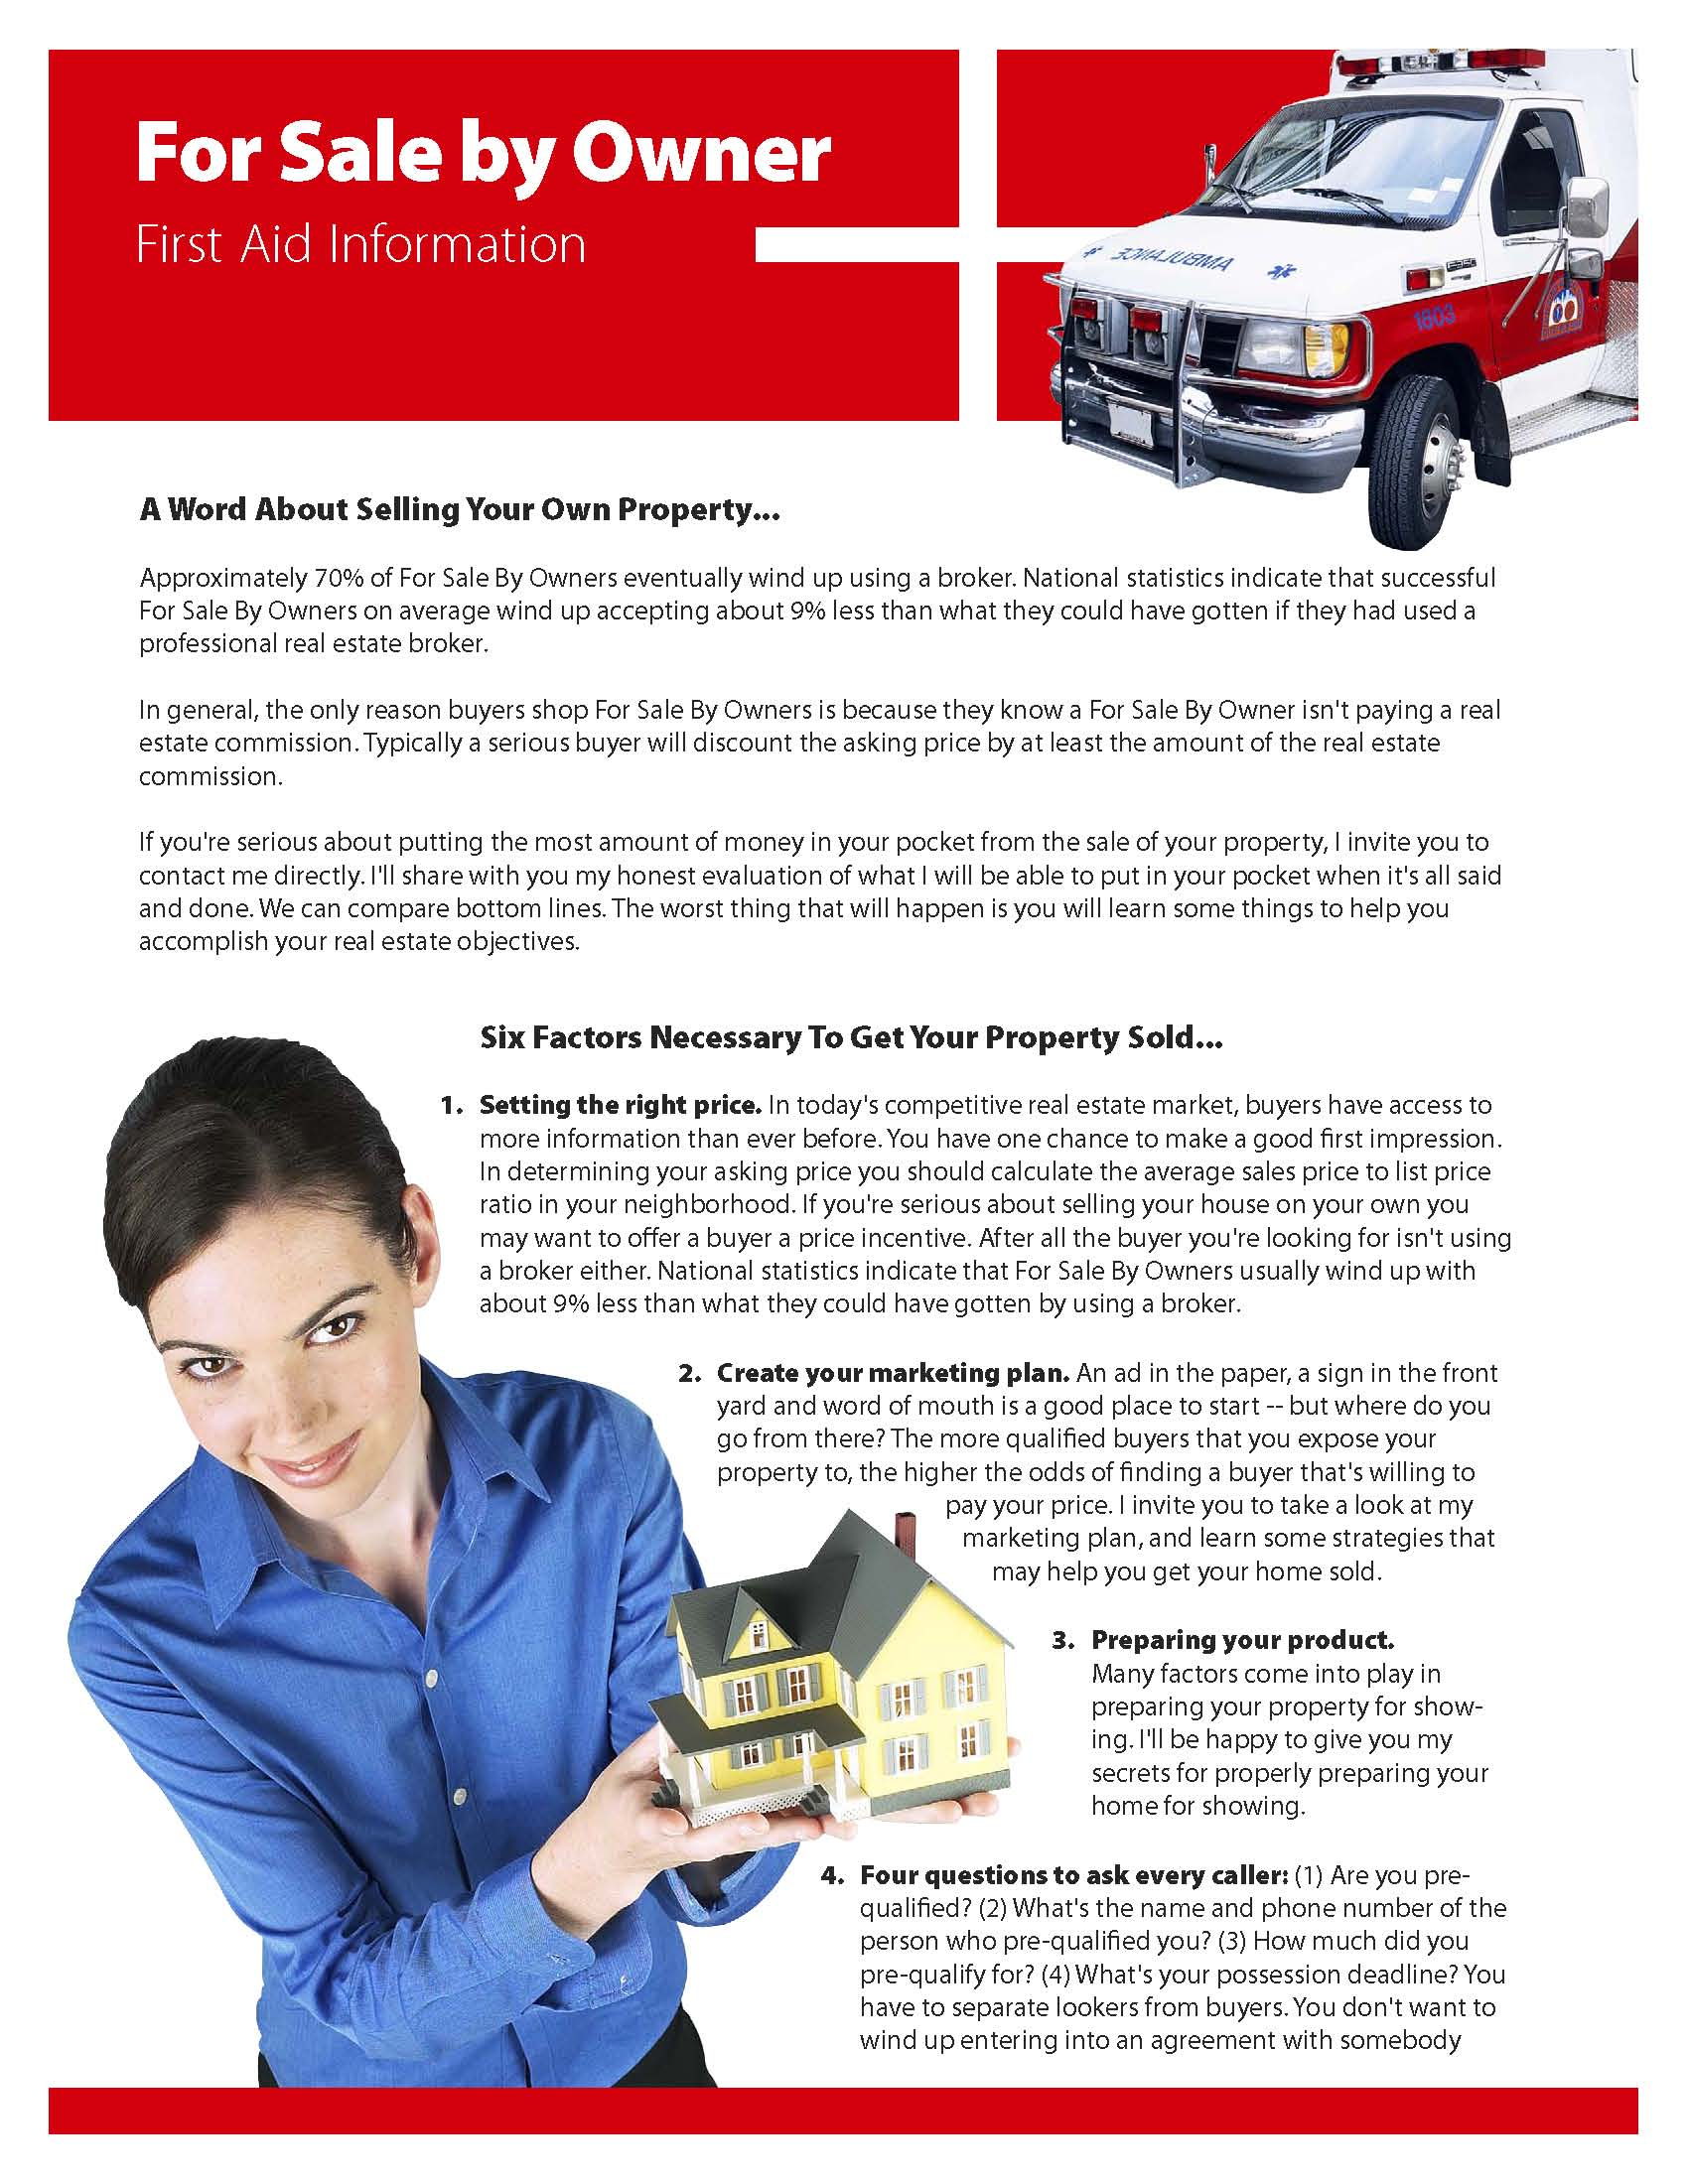 fsbo_first_aid_page_1_2200